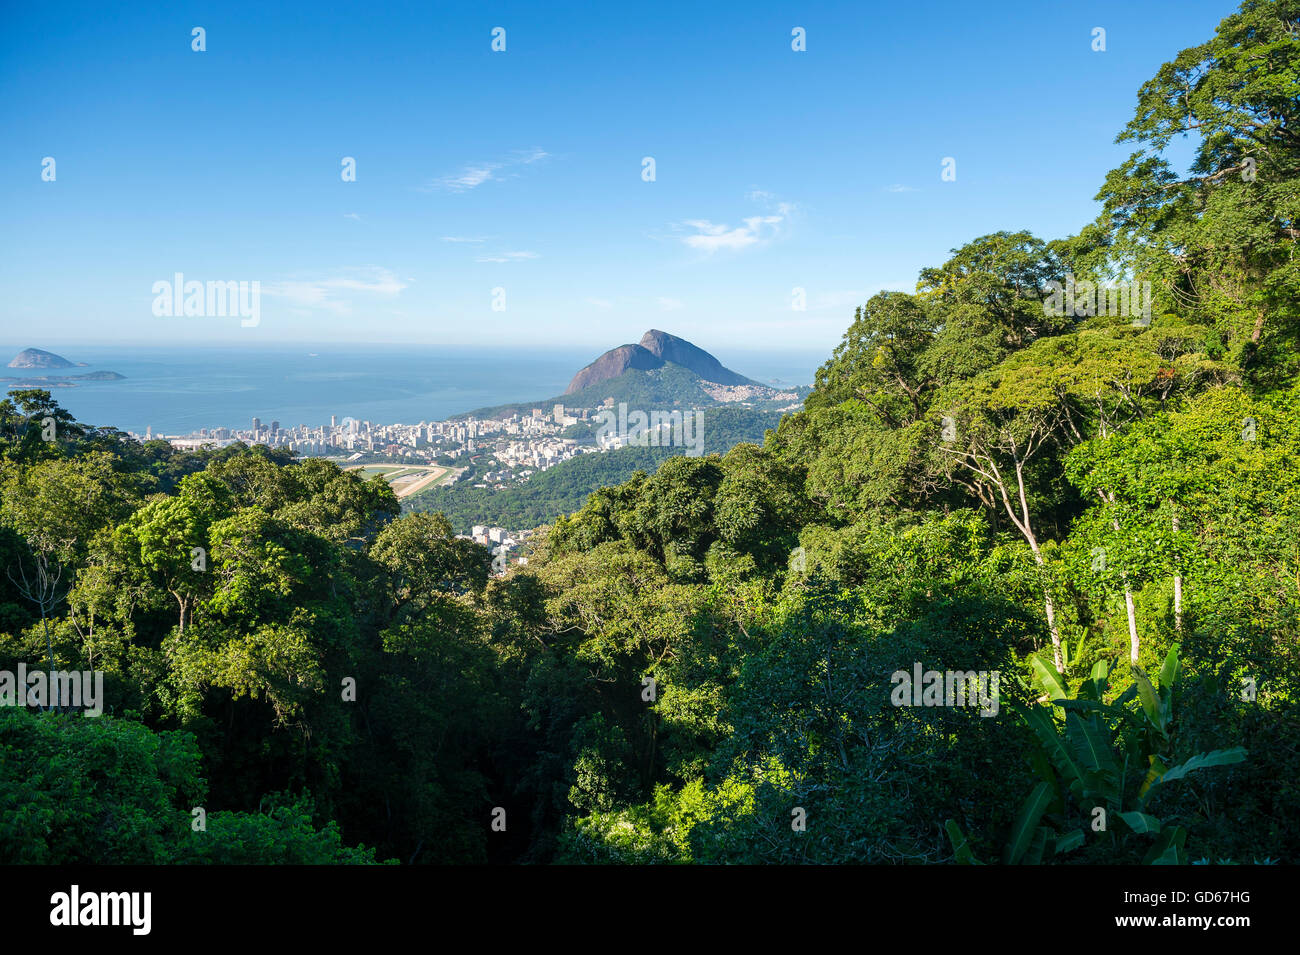 View of the dramatic natural skyline from the surrounding jungle greenery at the Vista Chinesa scenic overlook in Stock Photo